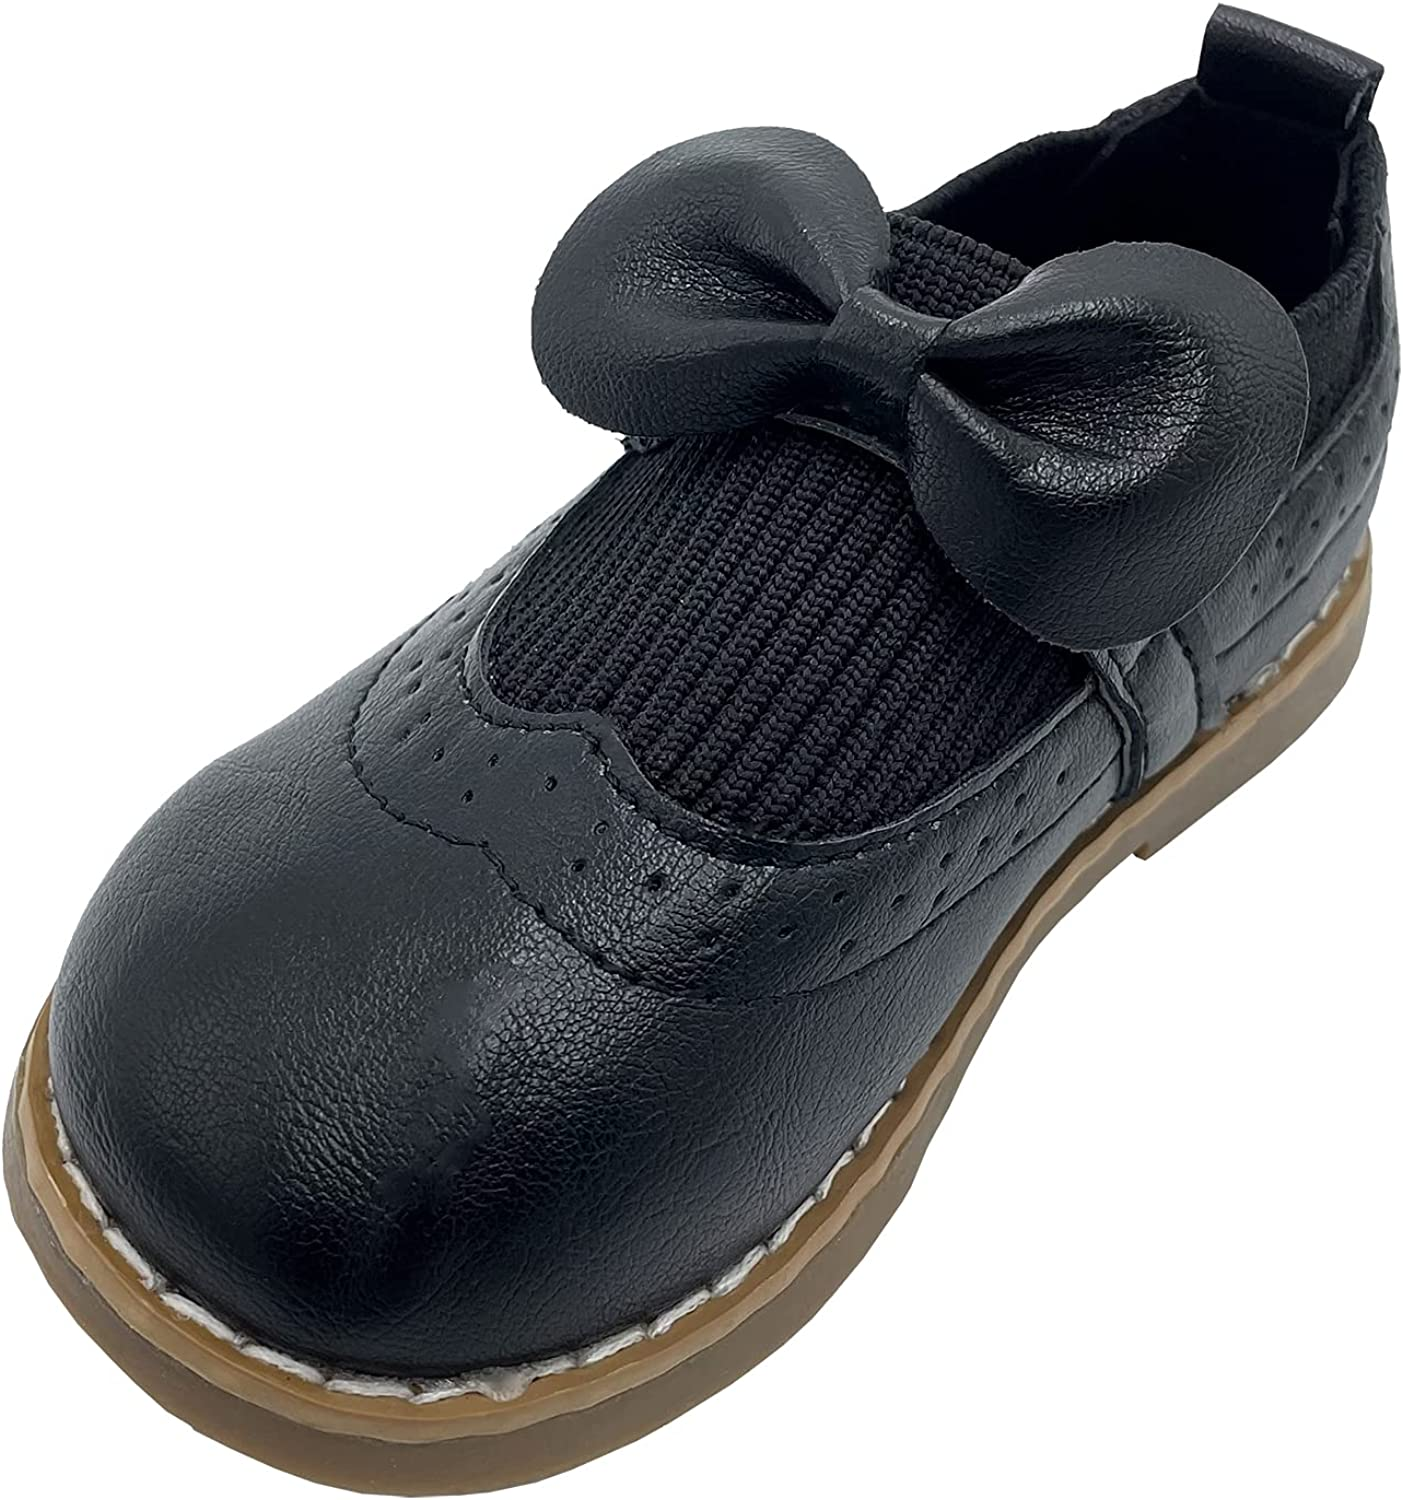 Toddler Girls Bowknot Weave Classic Mary Jane Flats School Uniform Shoes